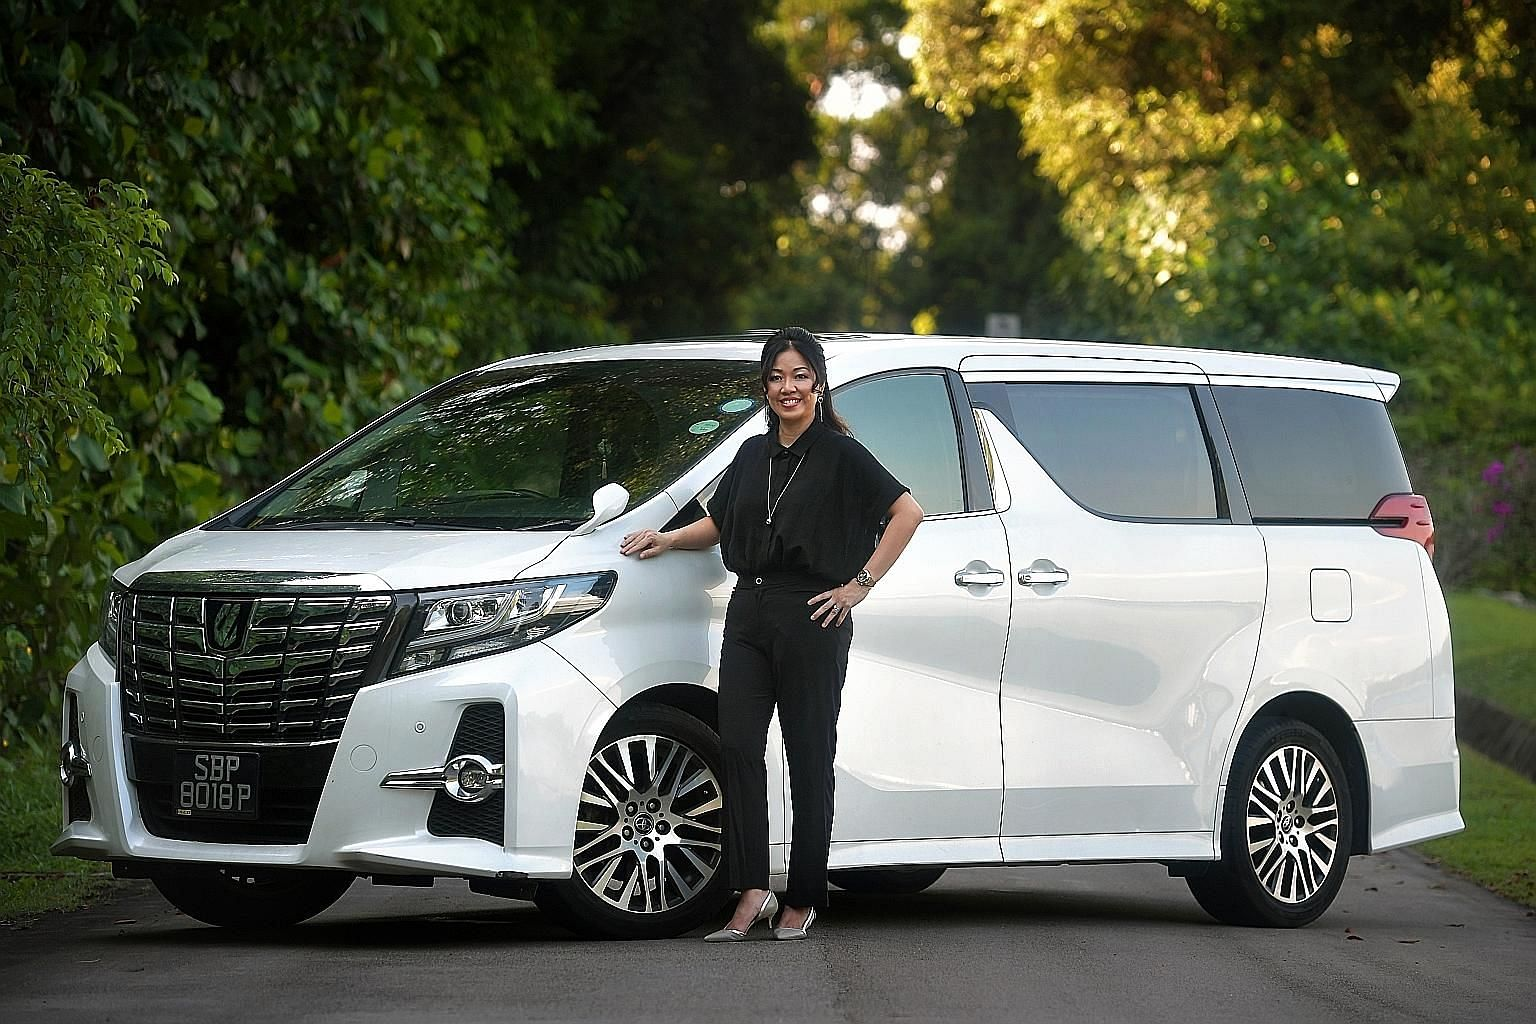 Ms Kua Hwee Cheng replaced her German cars with the Toyota Alphard, which is her first Japanese car and the biggest she has driven.